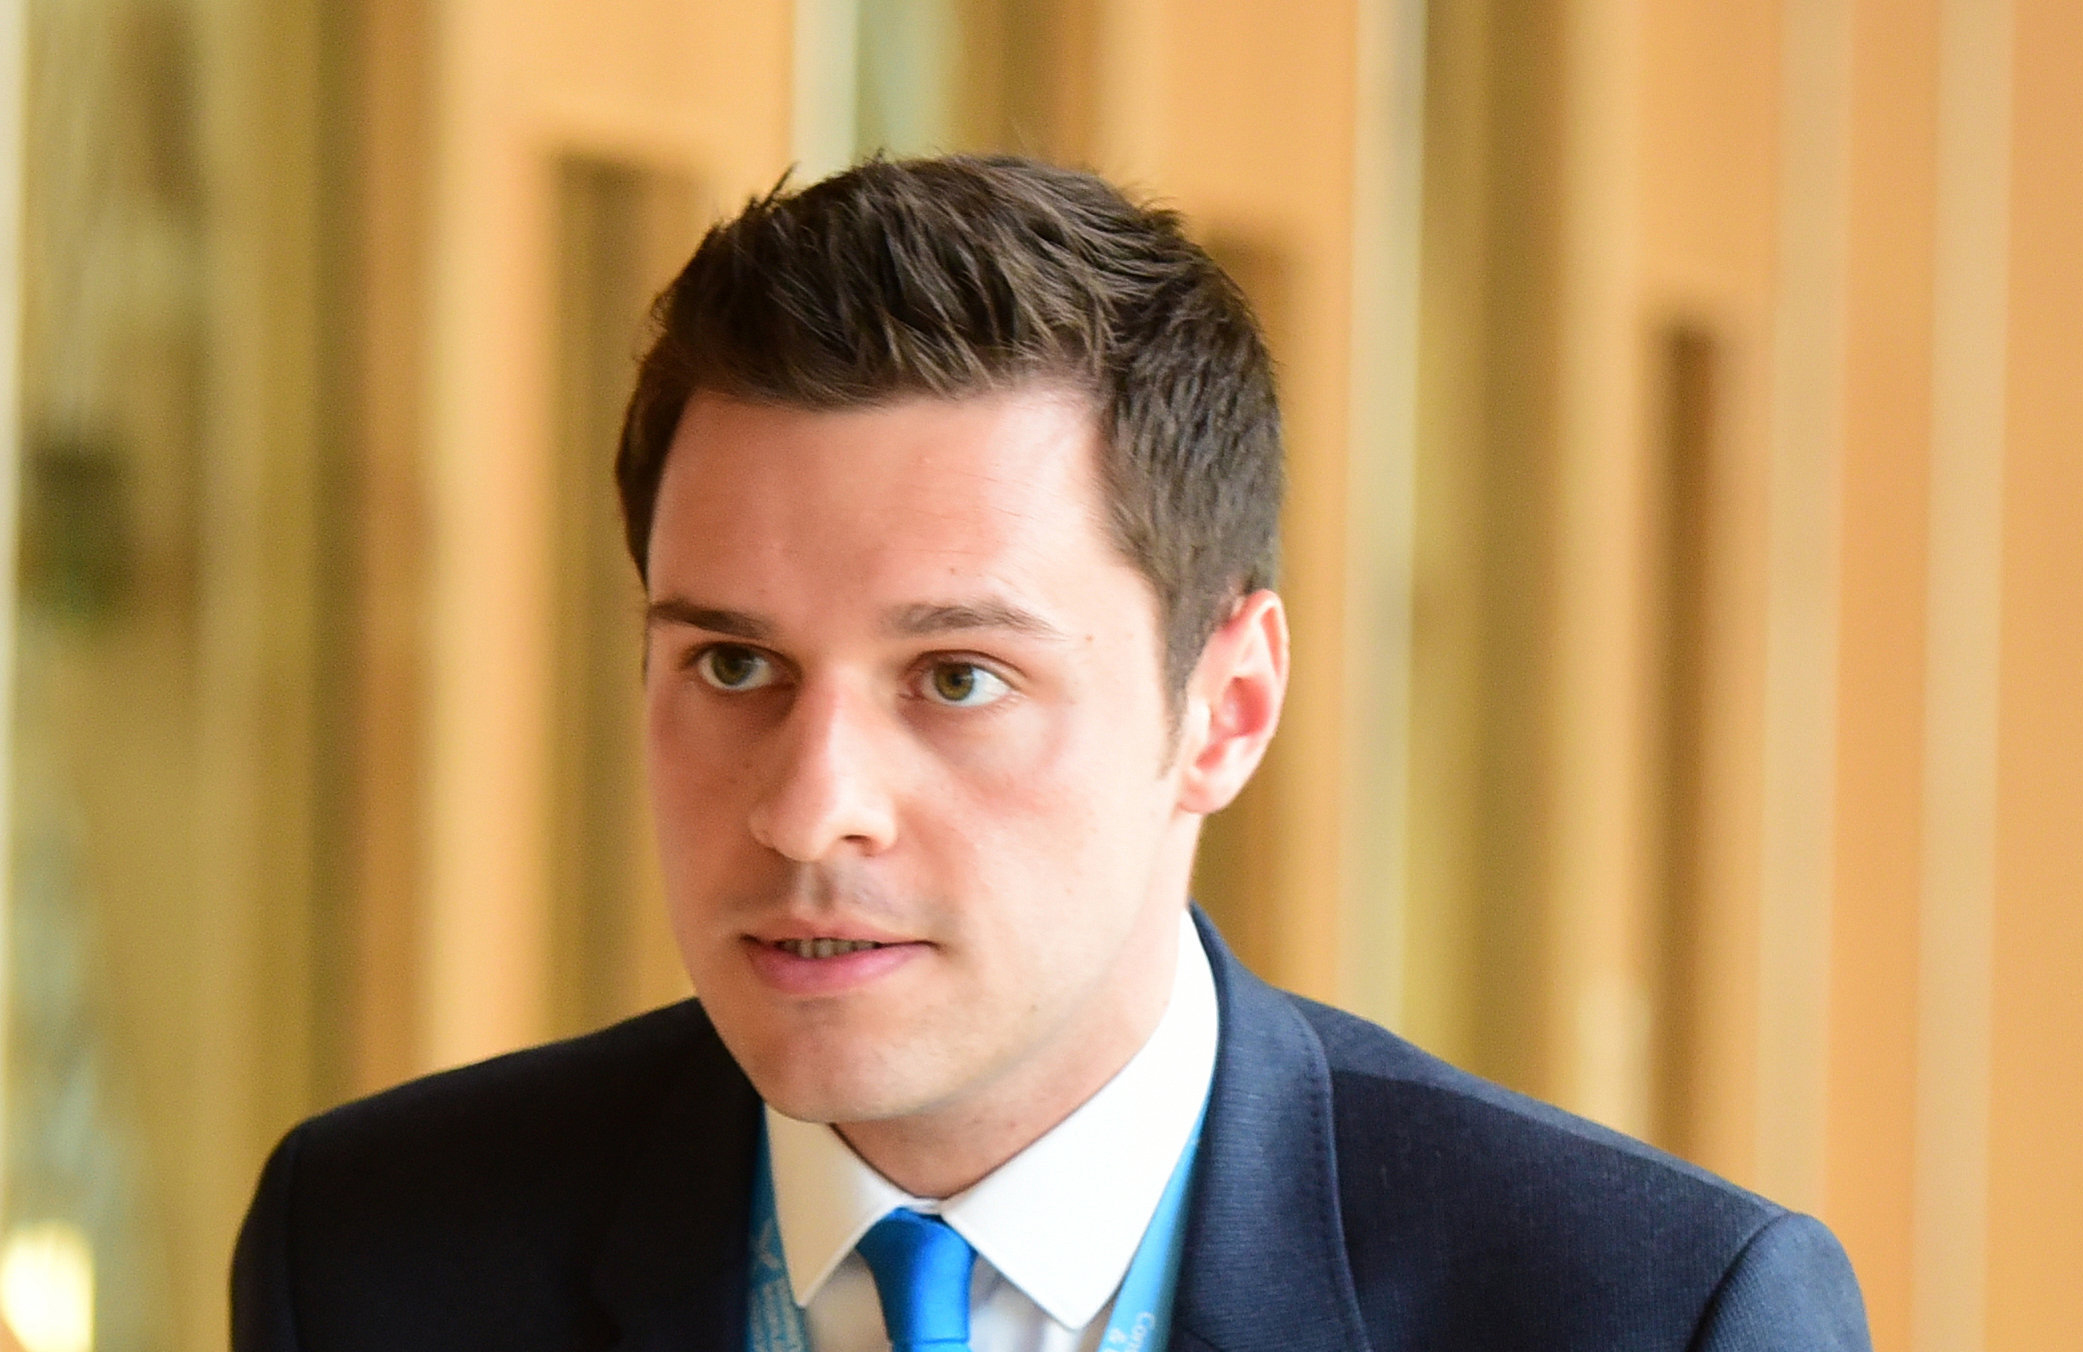 Ross Thomson has had the highest profile of any the 13 Scottish Tories elected in 2017